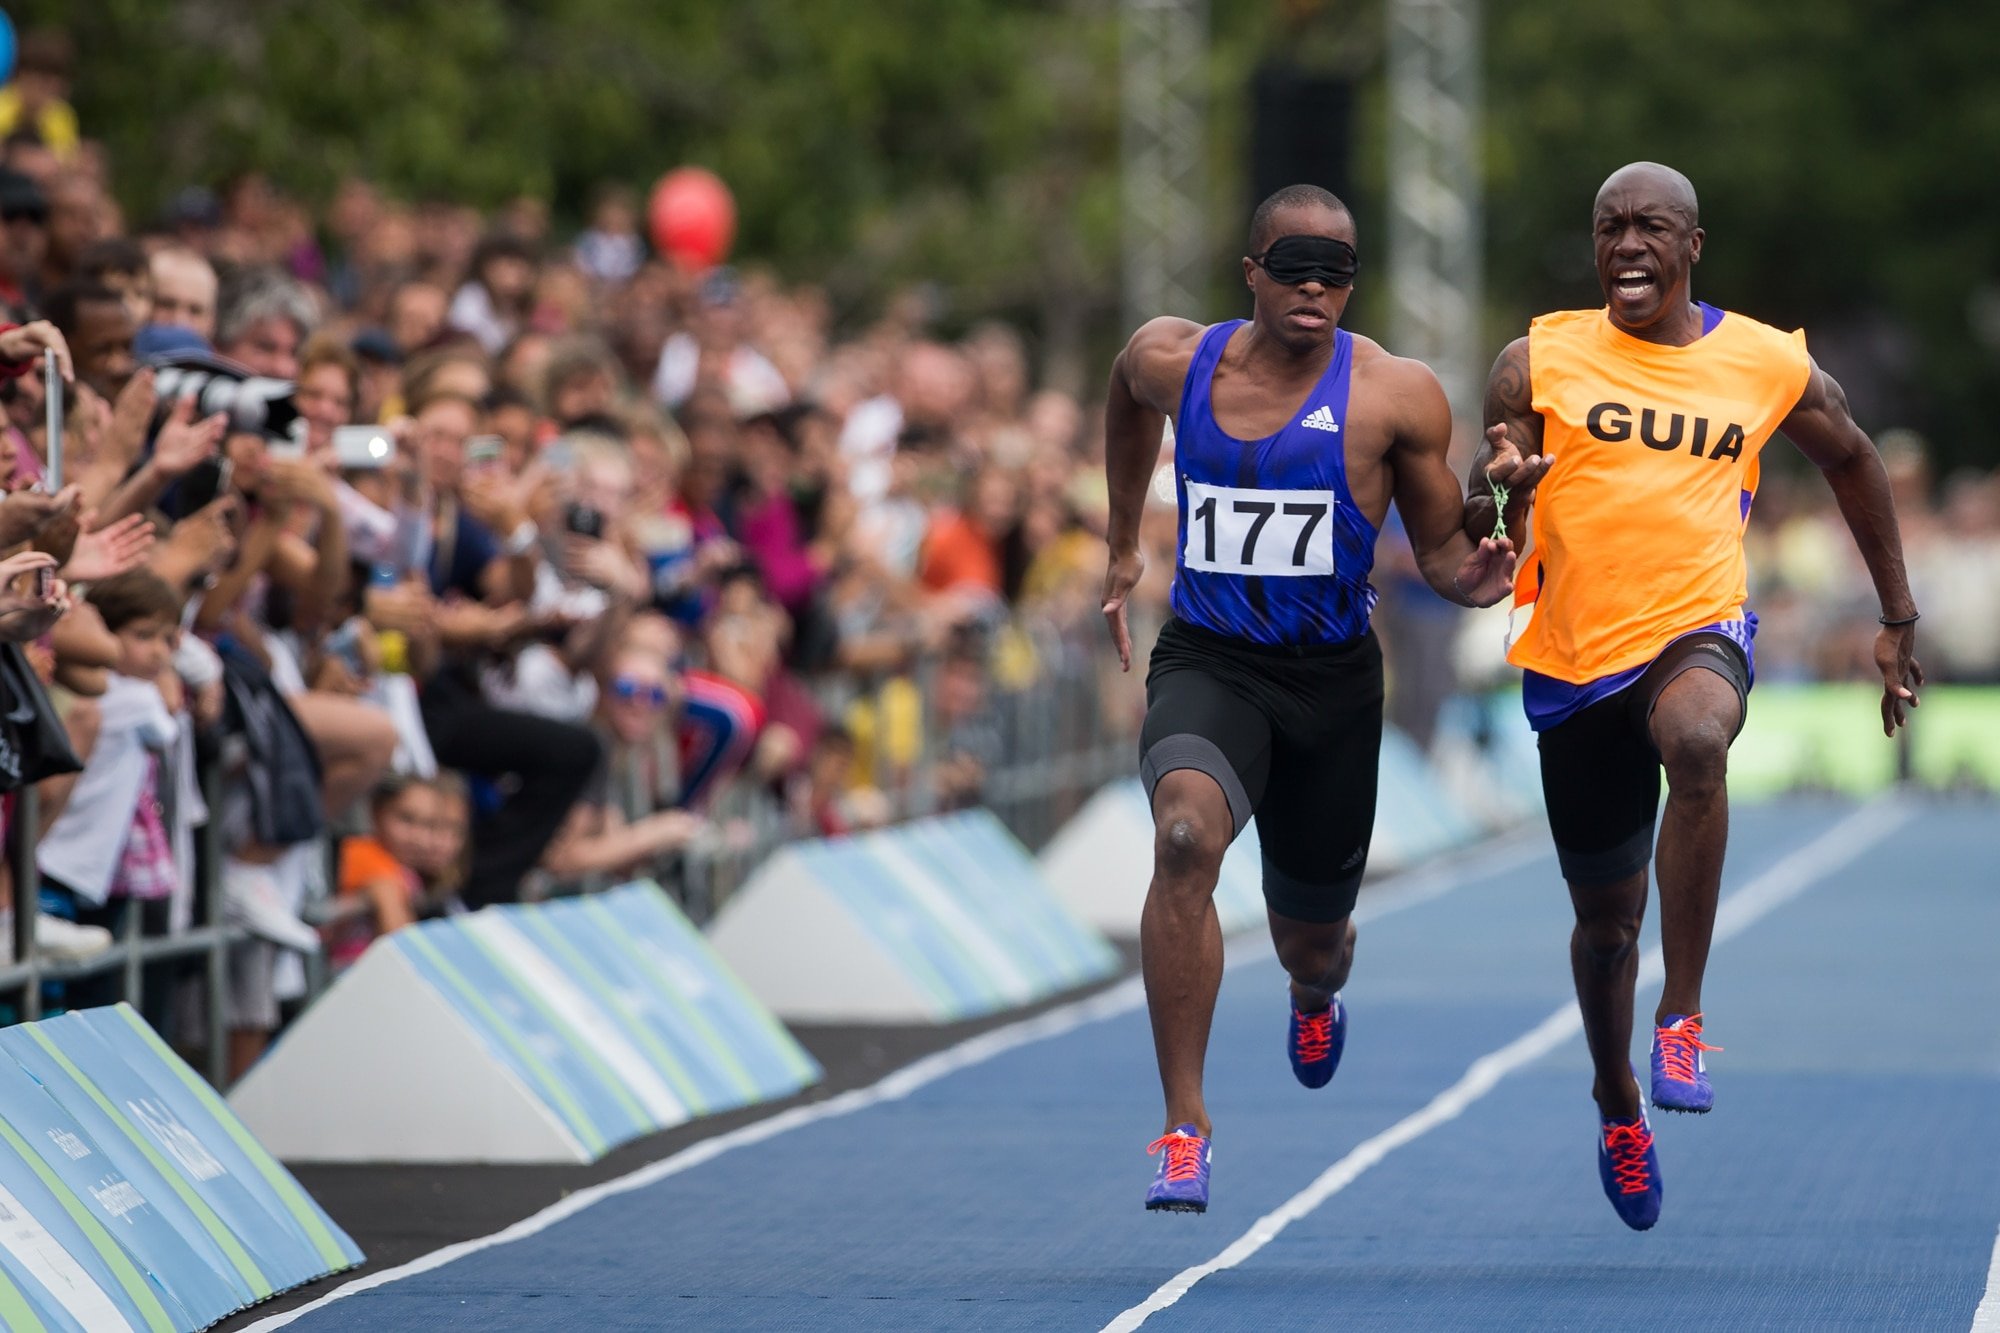 Two men running on track, one wearing blindfold (© AP Images)